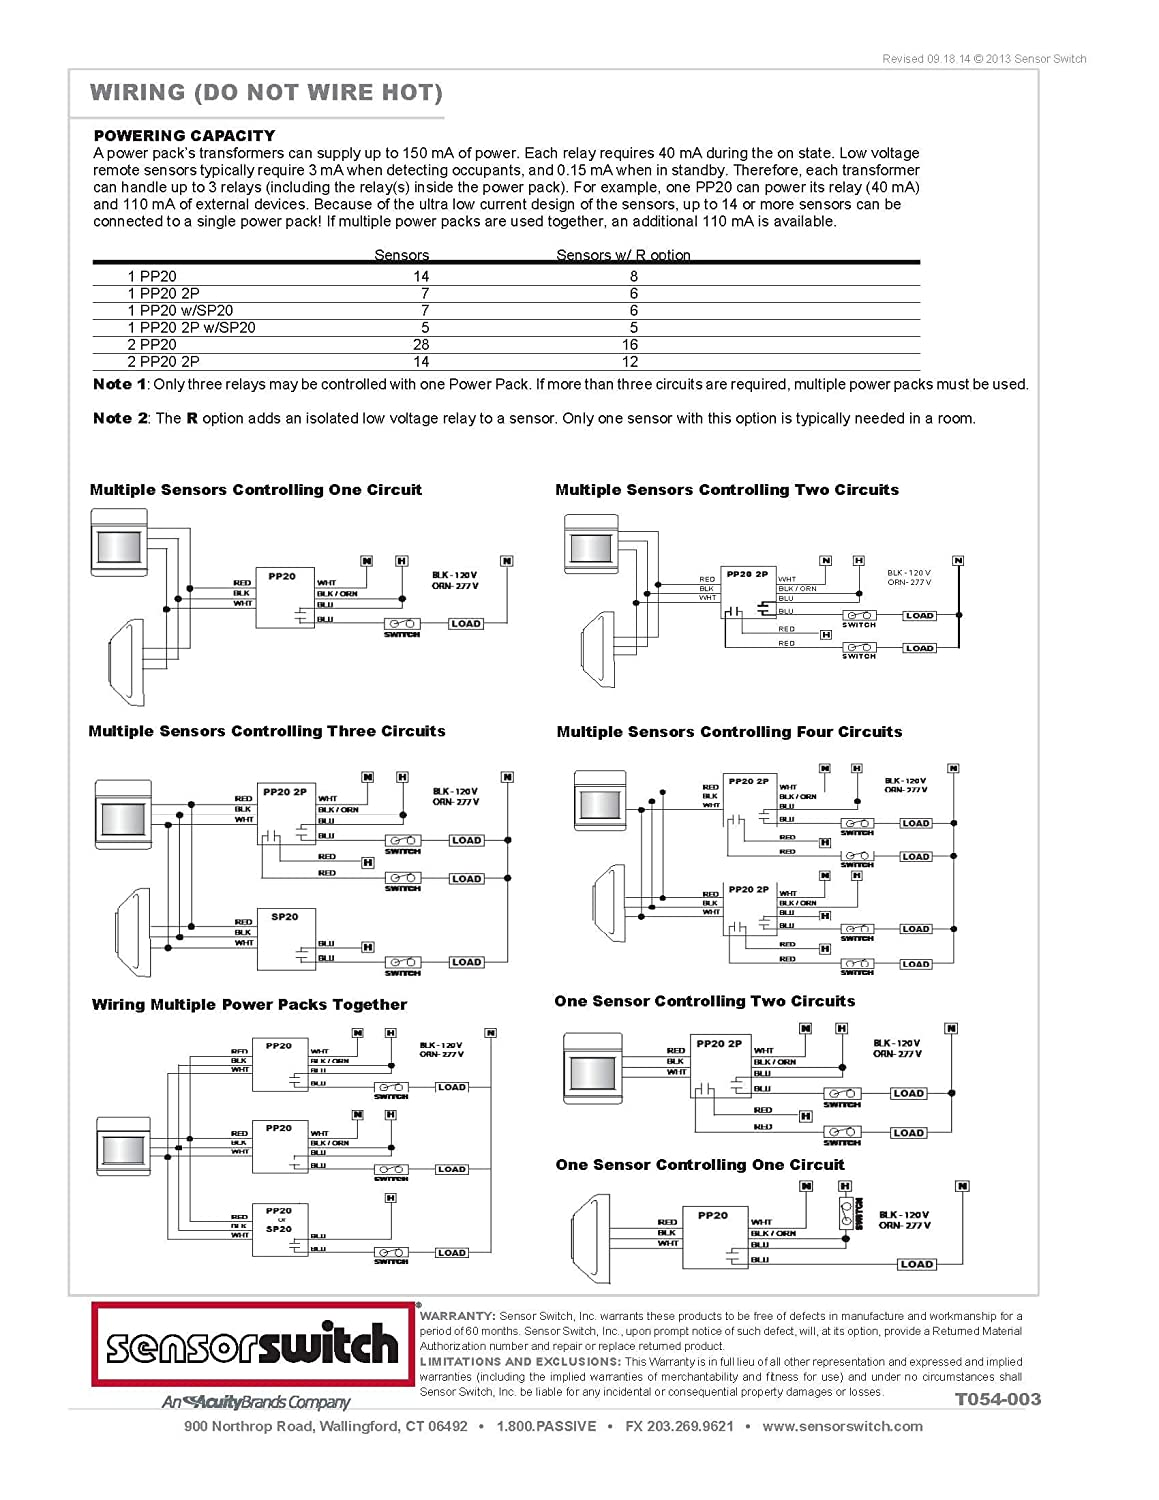 81OHwQSSQNL._SL1500_ sensor switch pp20 wiring diagrams wiring diagrams sensor switch pp20 wiring diagram at mifinder.co